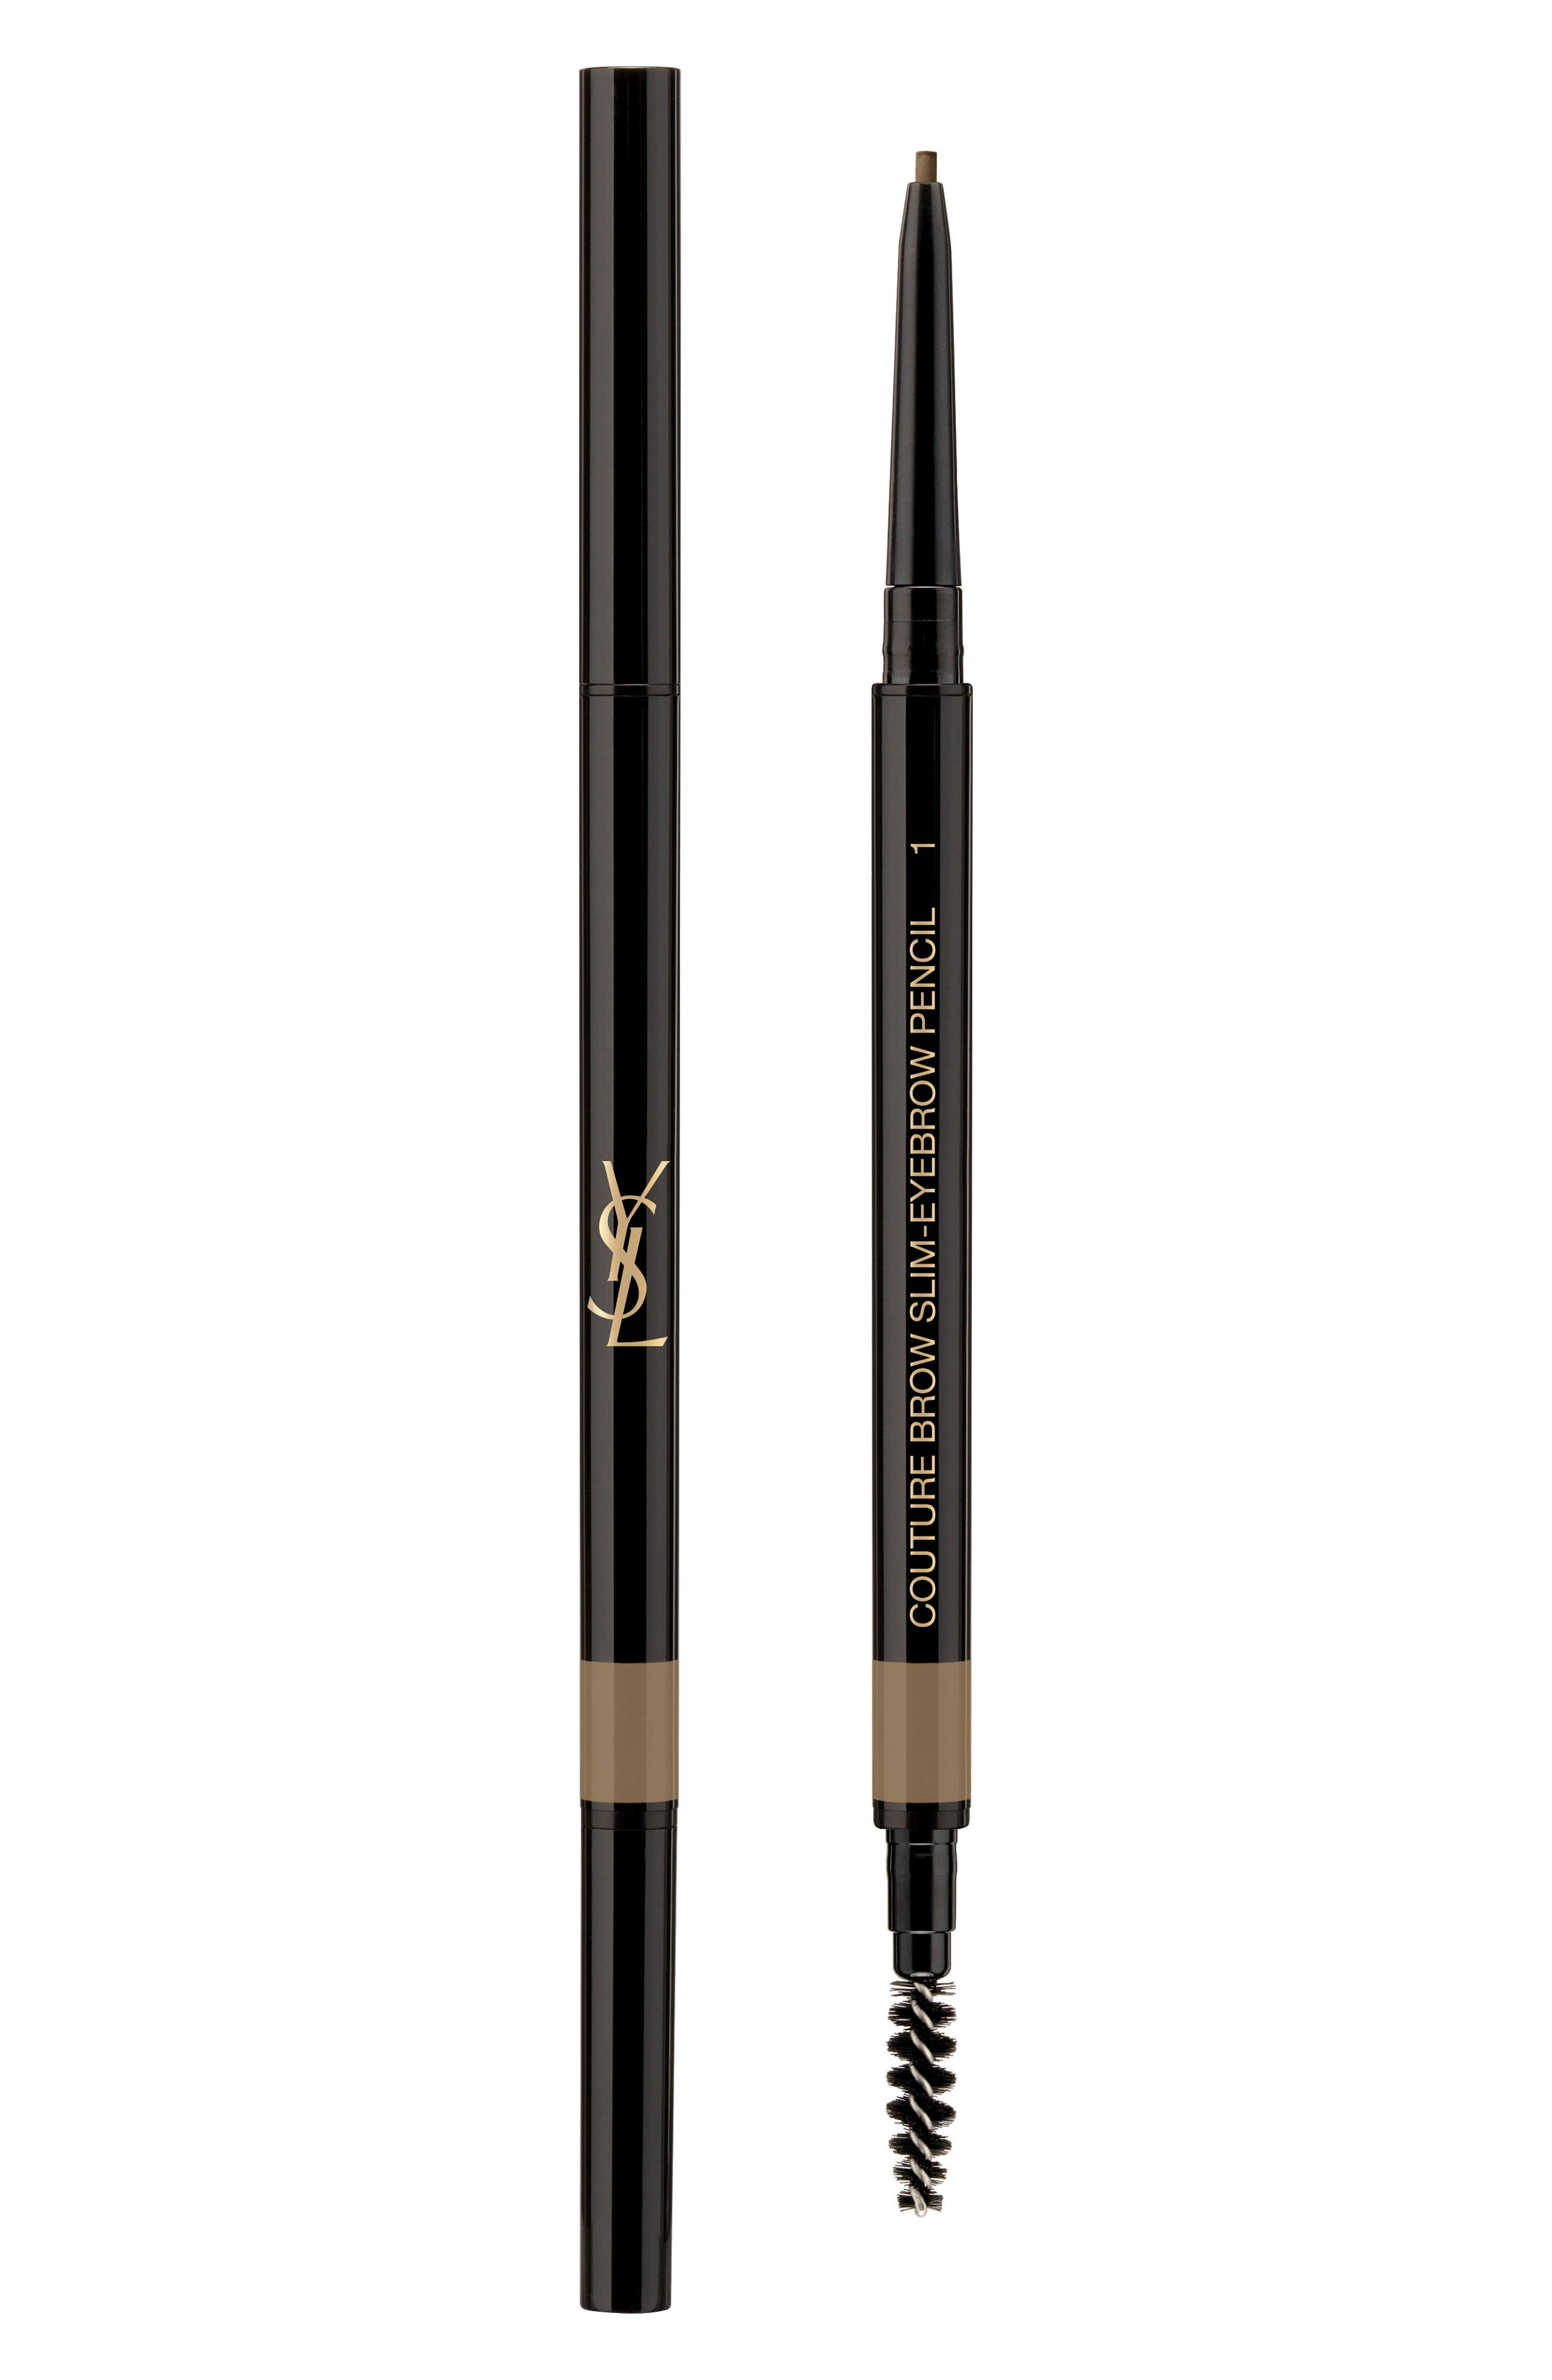 Yves Saint Laurent Couture Brow Slim Eyebrow Pencil - 01 Ash Brown